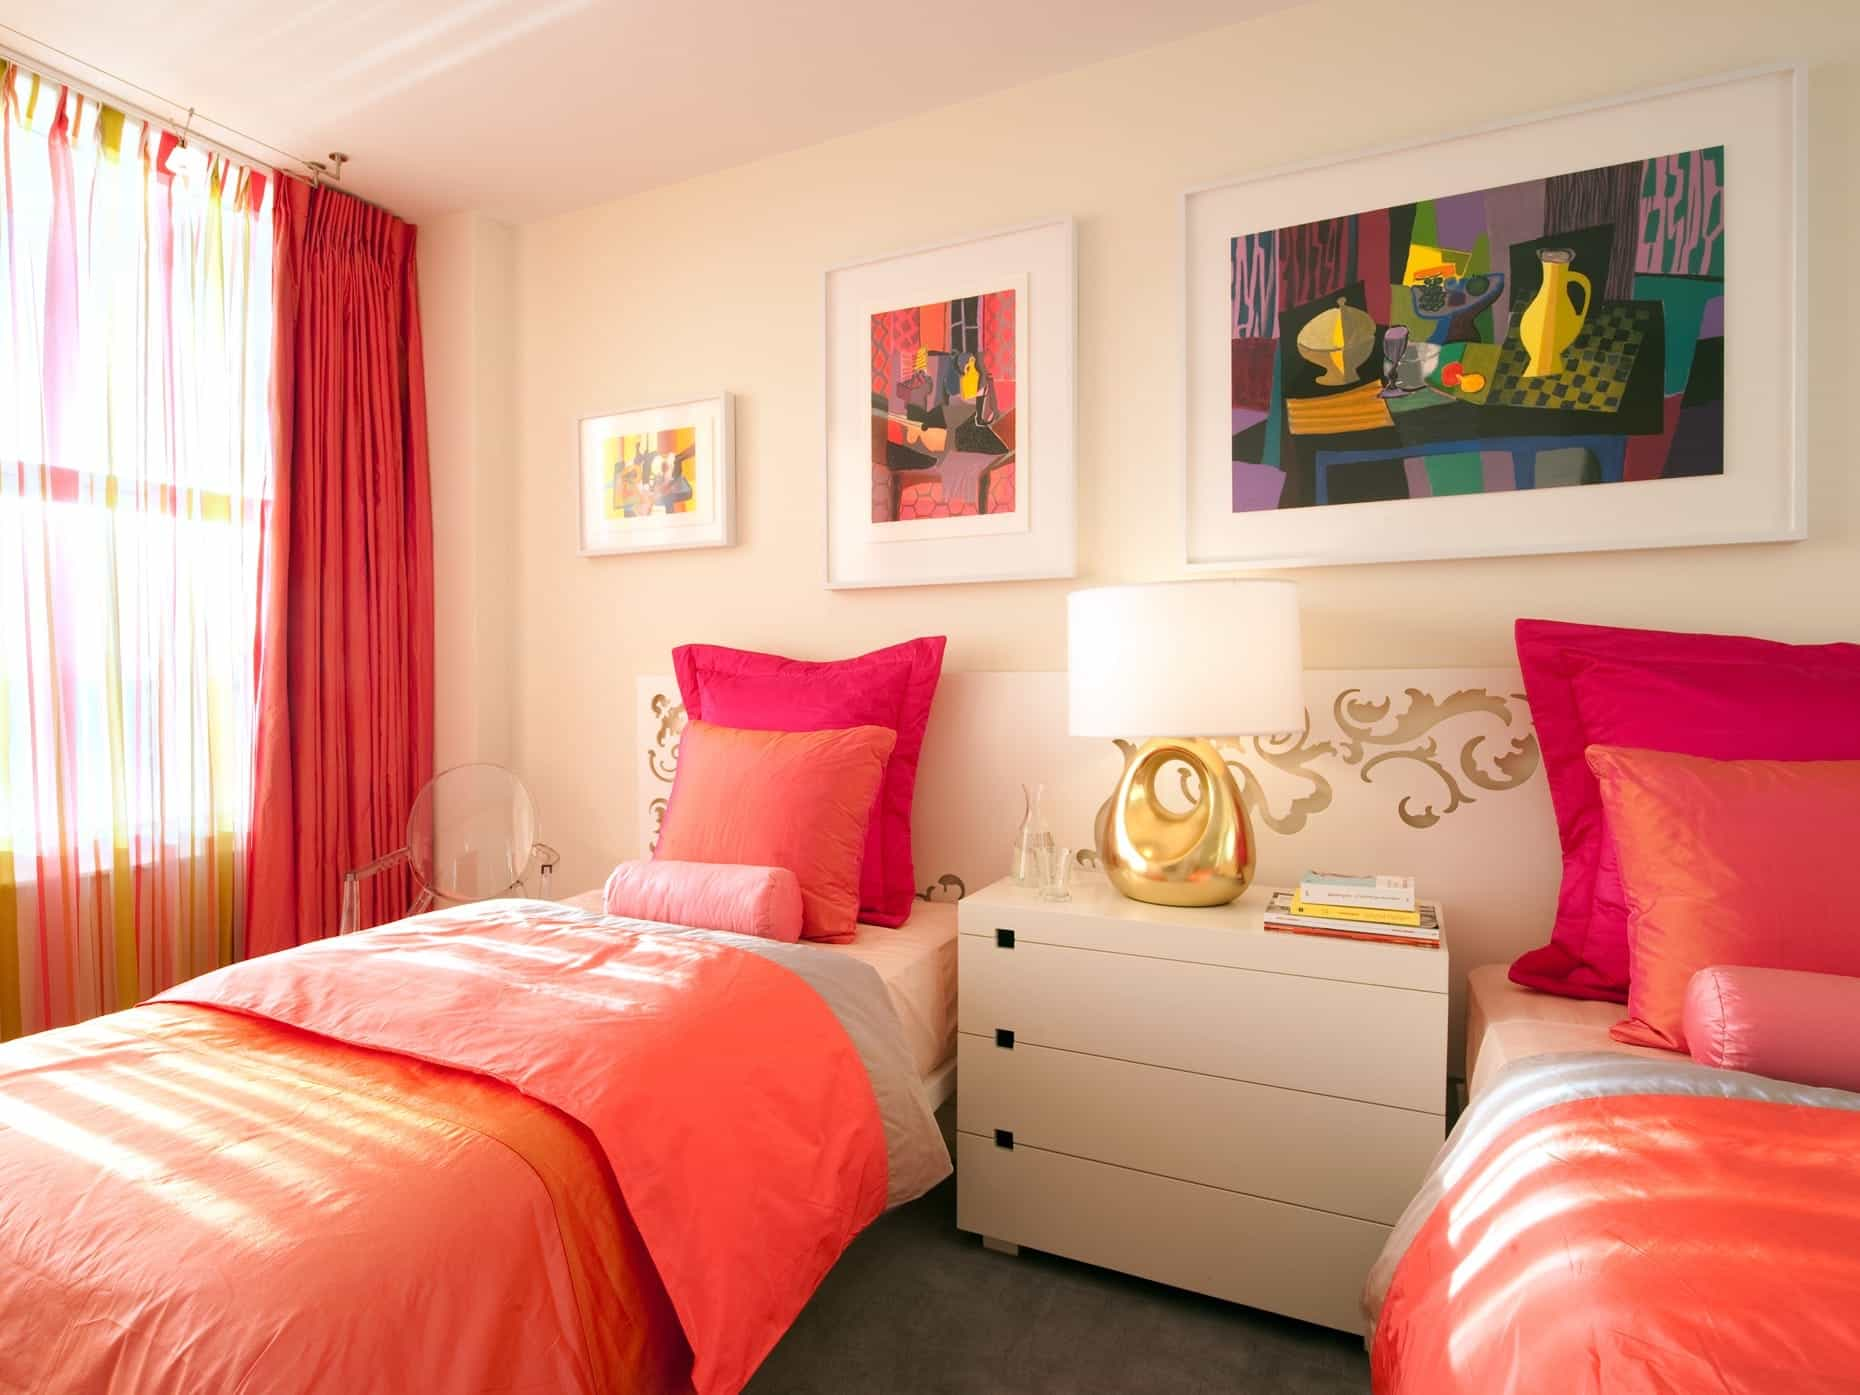 Pink Bedroom With Twin Beds And Custom Shared Headboard (Image 22 of 27)